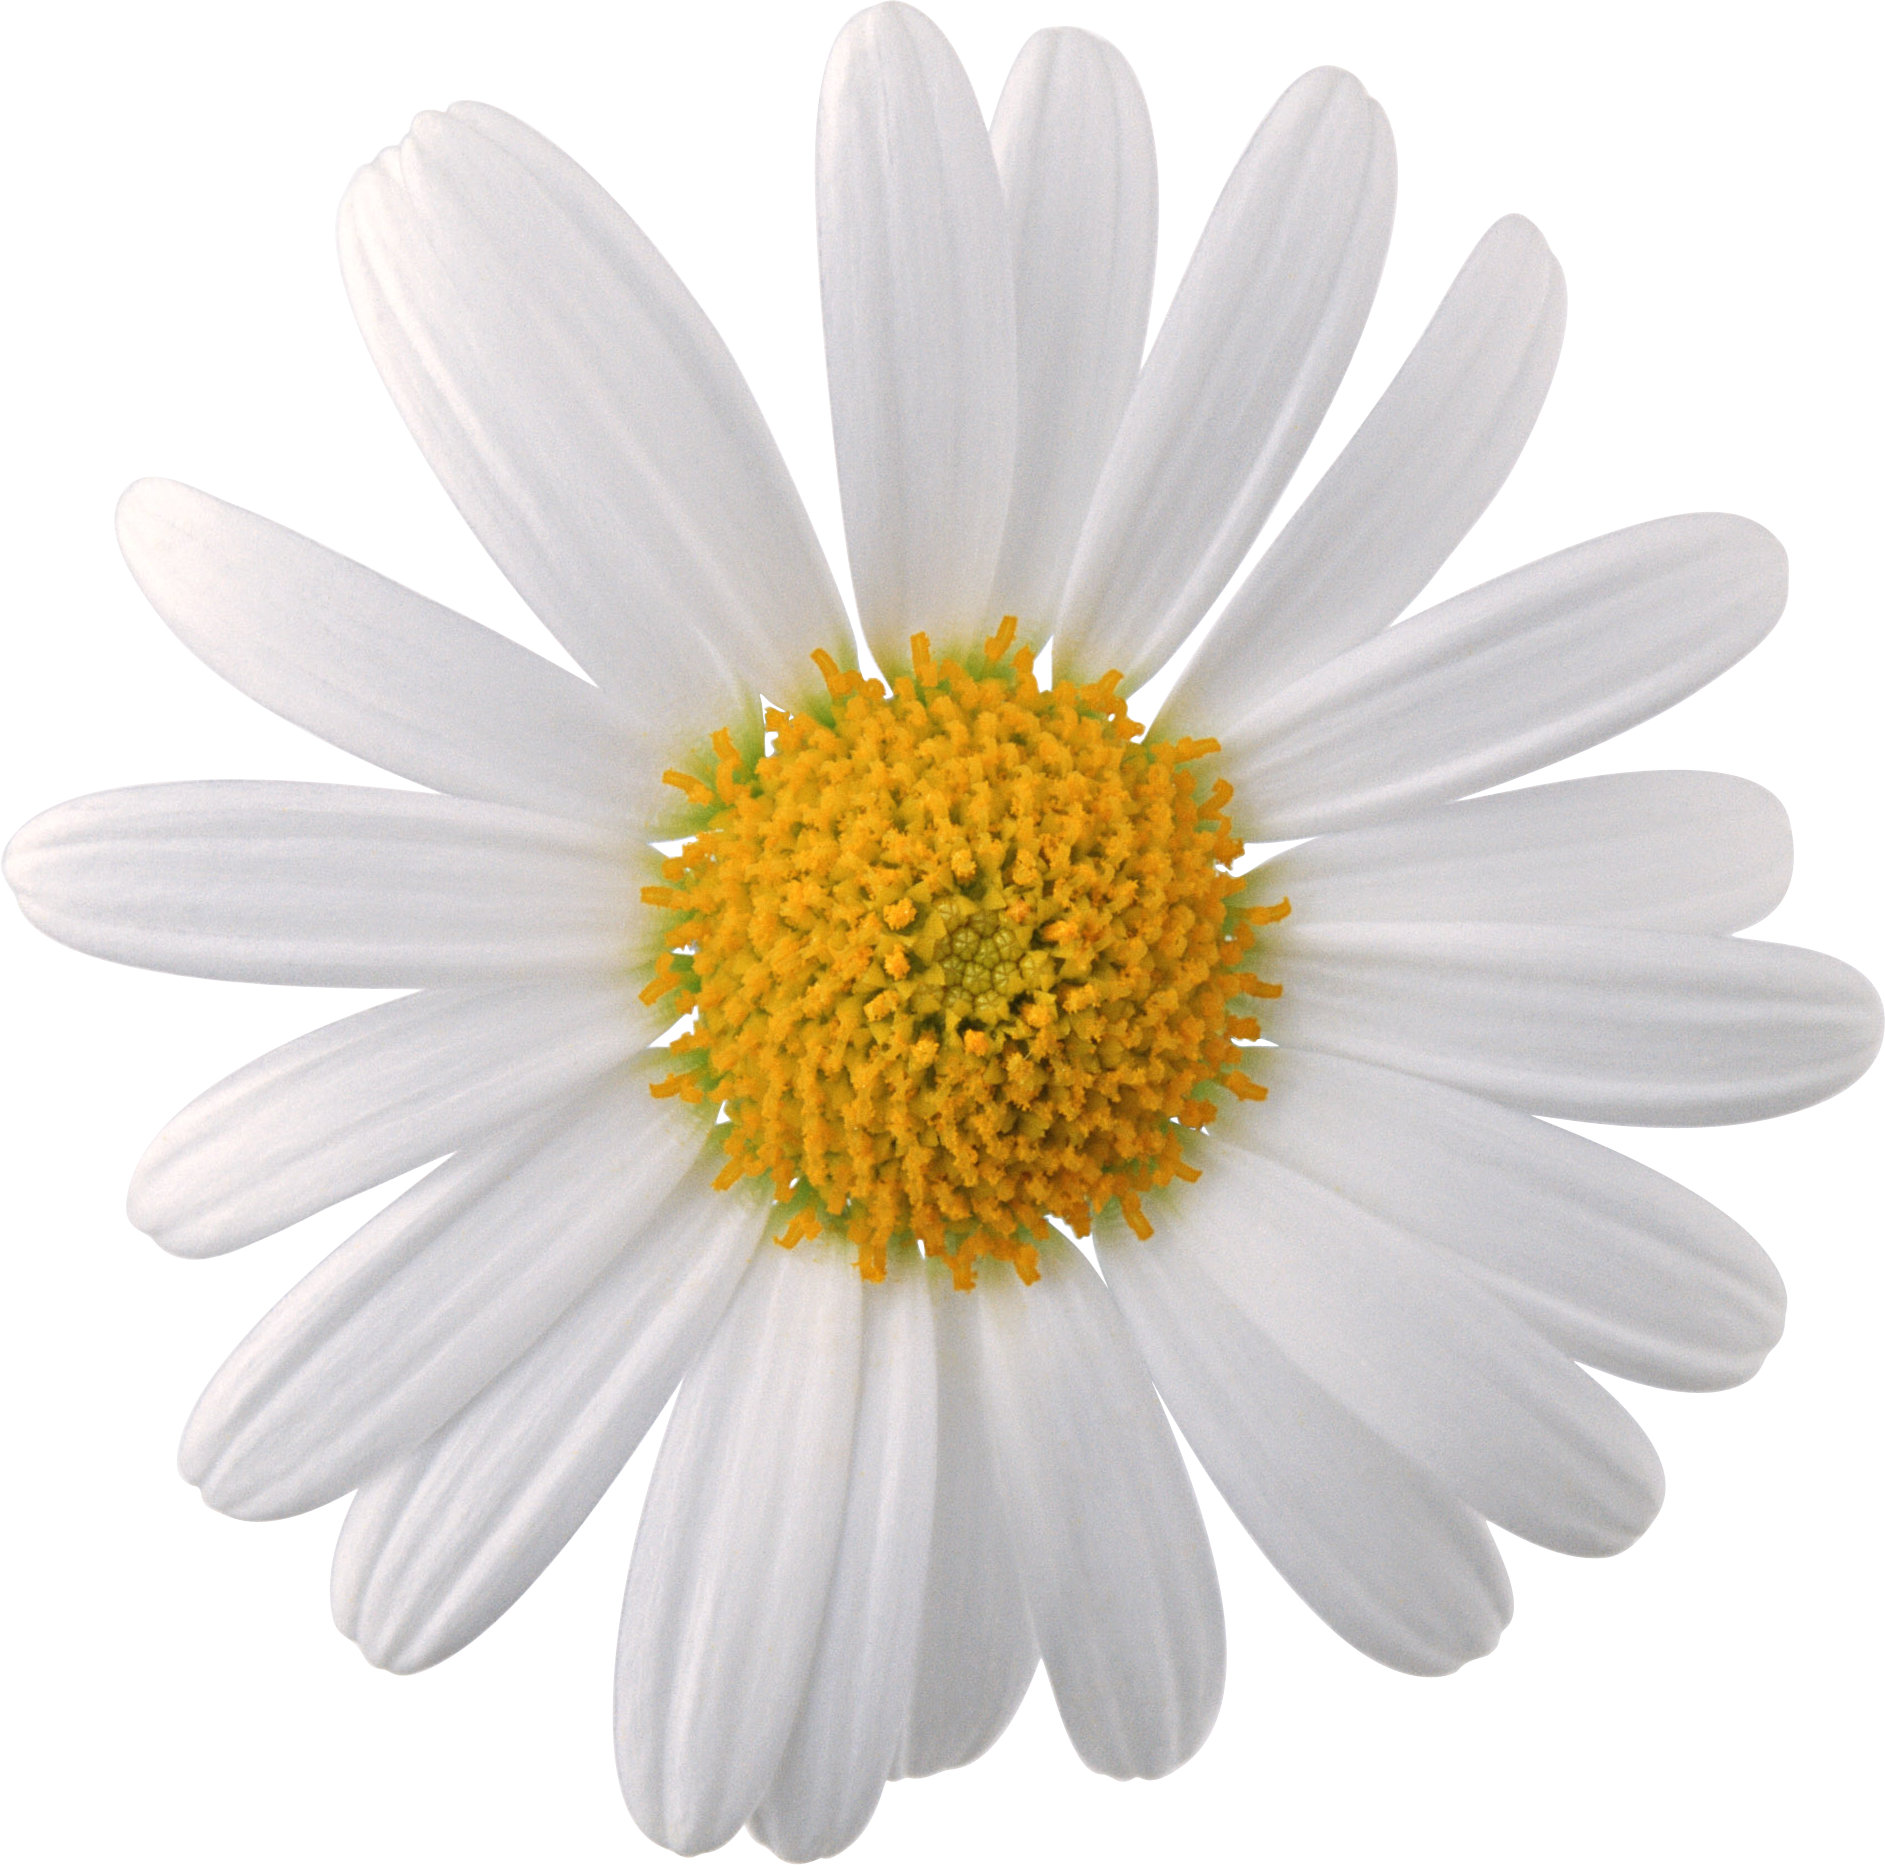 Free download of Camomile PNG Image Without Background